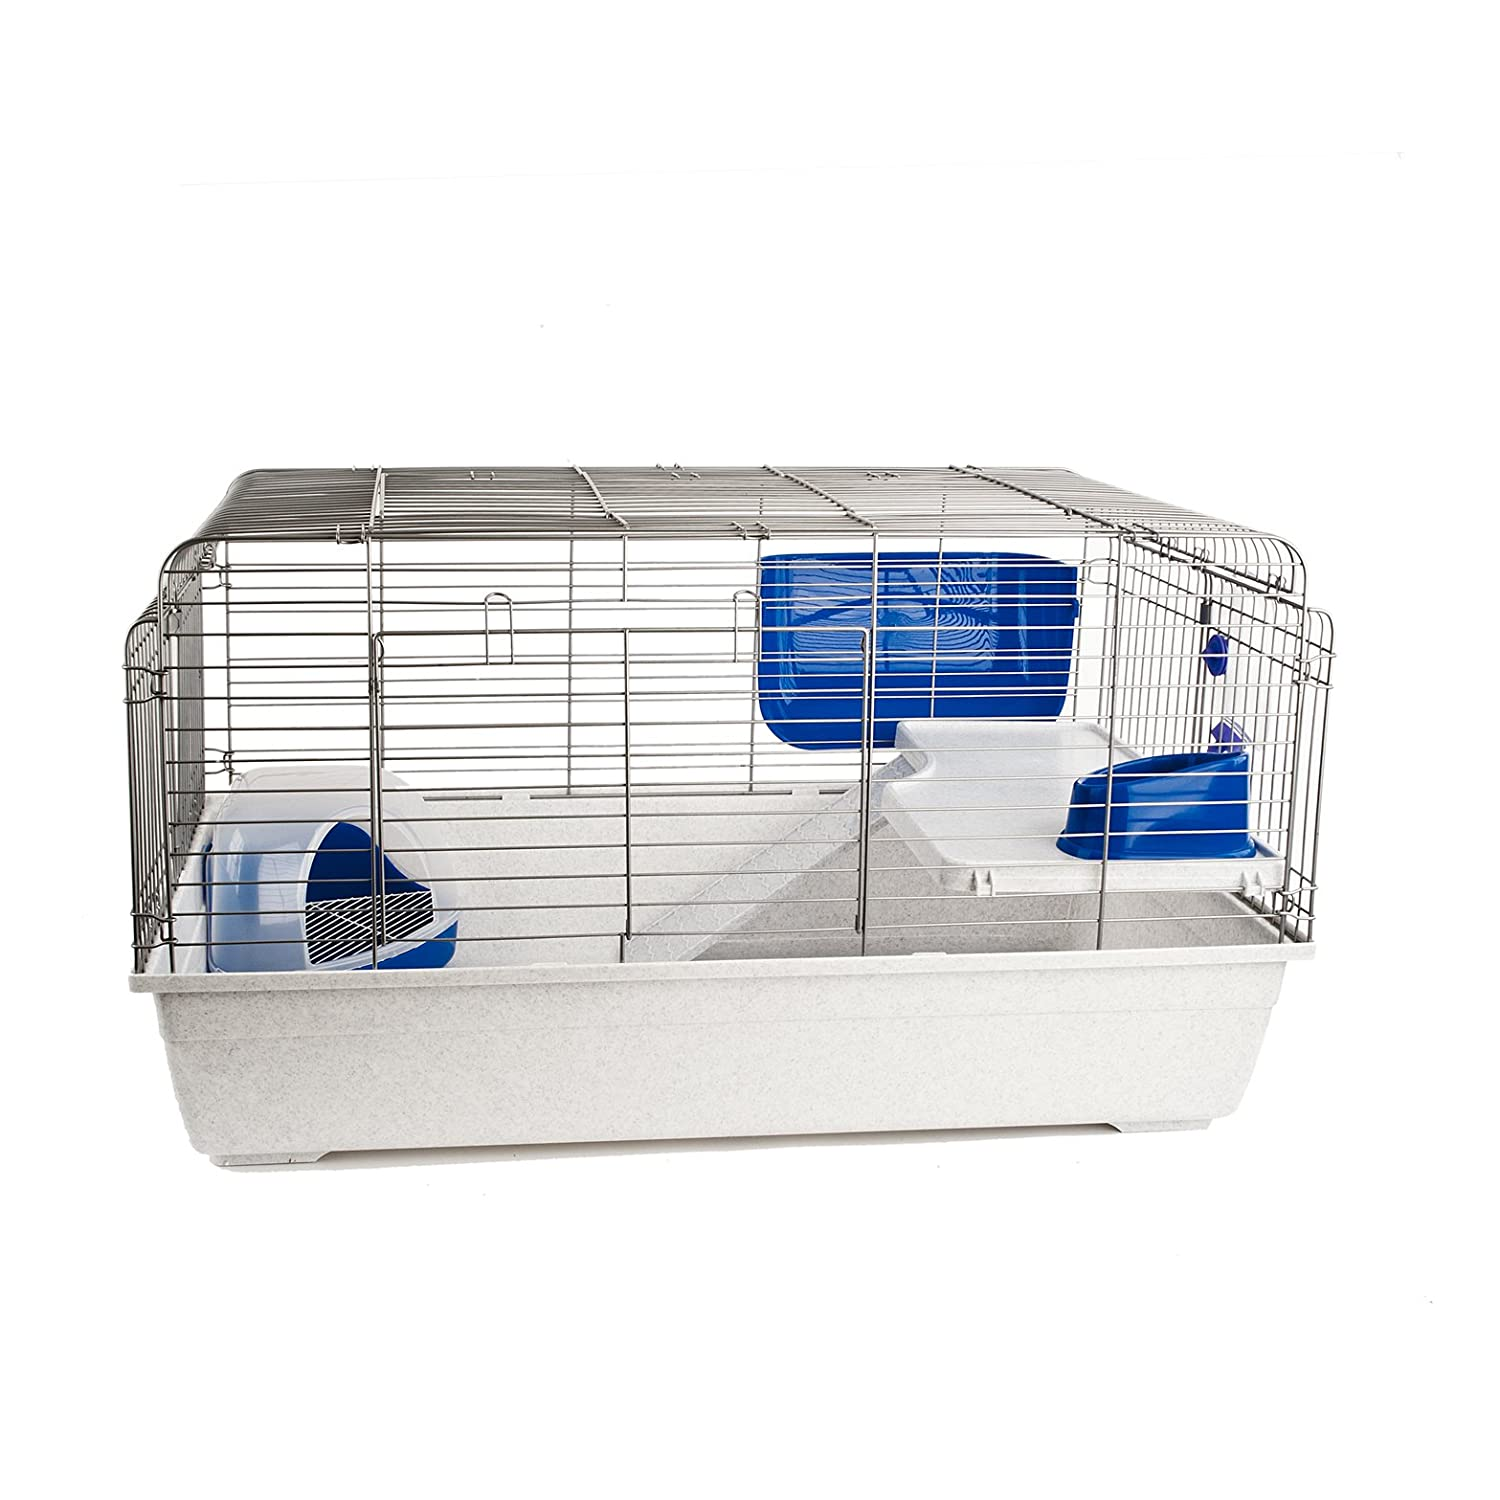 LITTLE FRIENDS Paris 100 Indoor Rabbit Cage with Accessories 99.5cm long x 57cm wide x 54cm high;height=